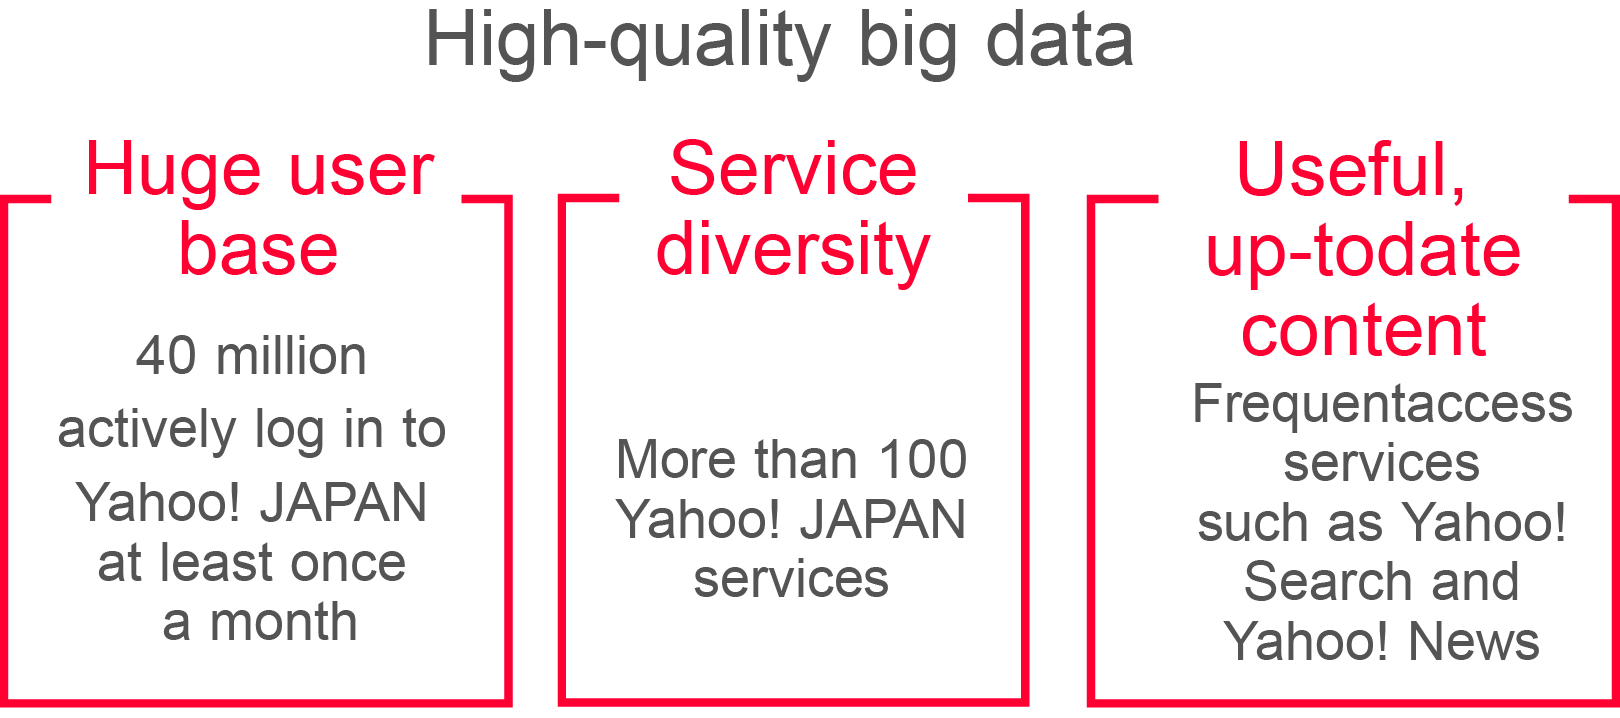 High-quality big data